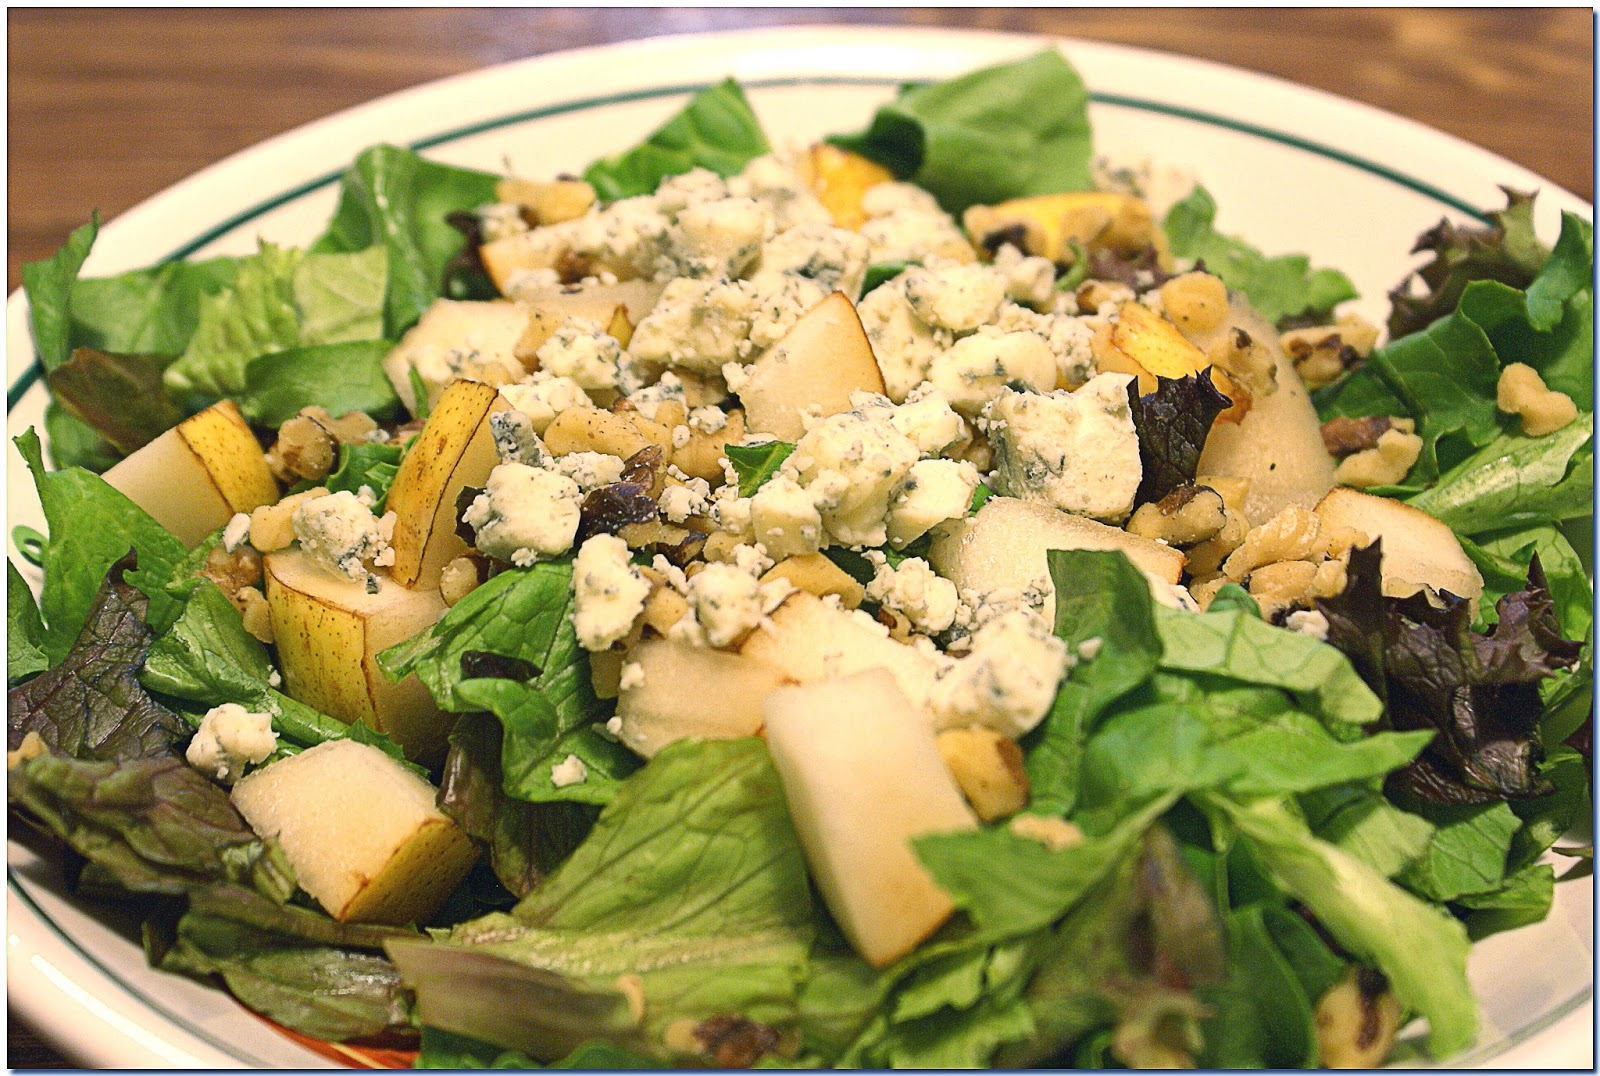 ... the pears, gorgonzola, and walnuts over the salad before serving